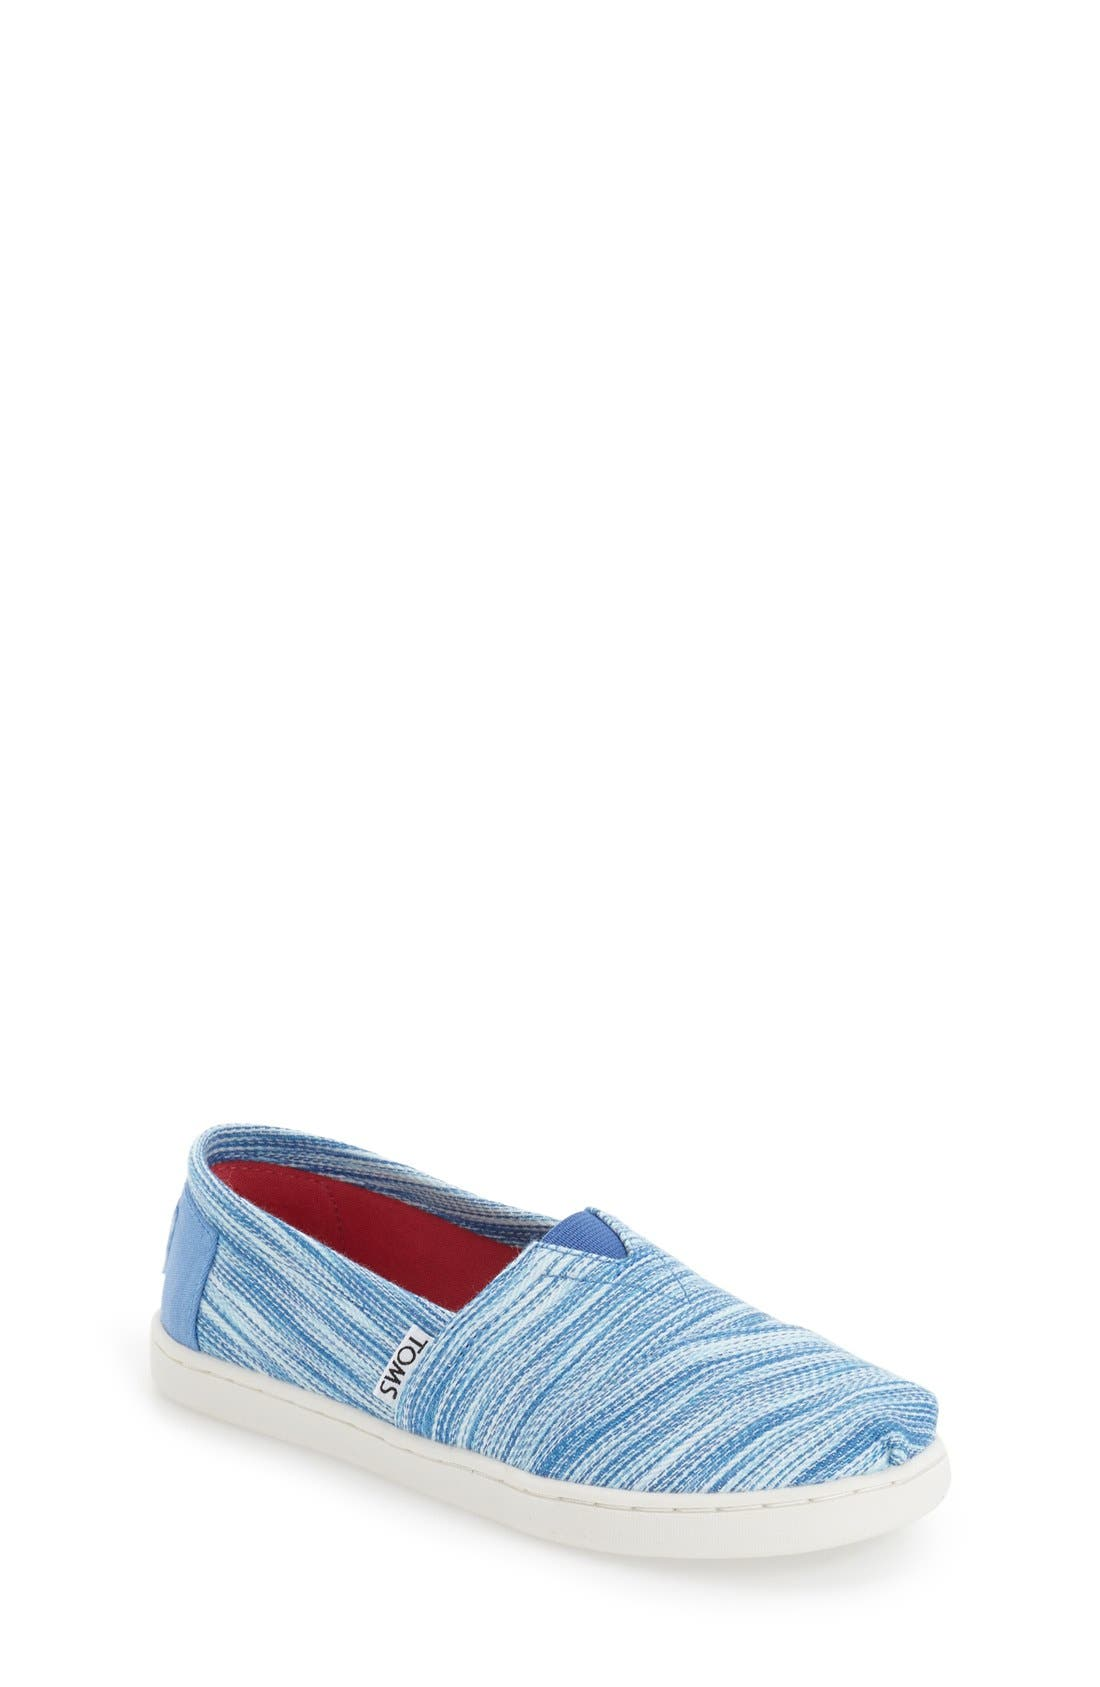 TOMS 'Classic - Blue Space Dye' Slip-On